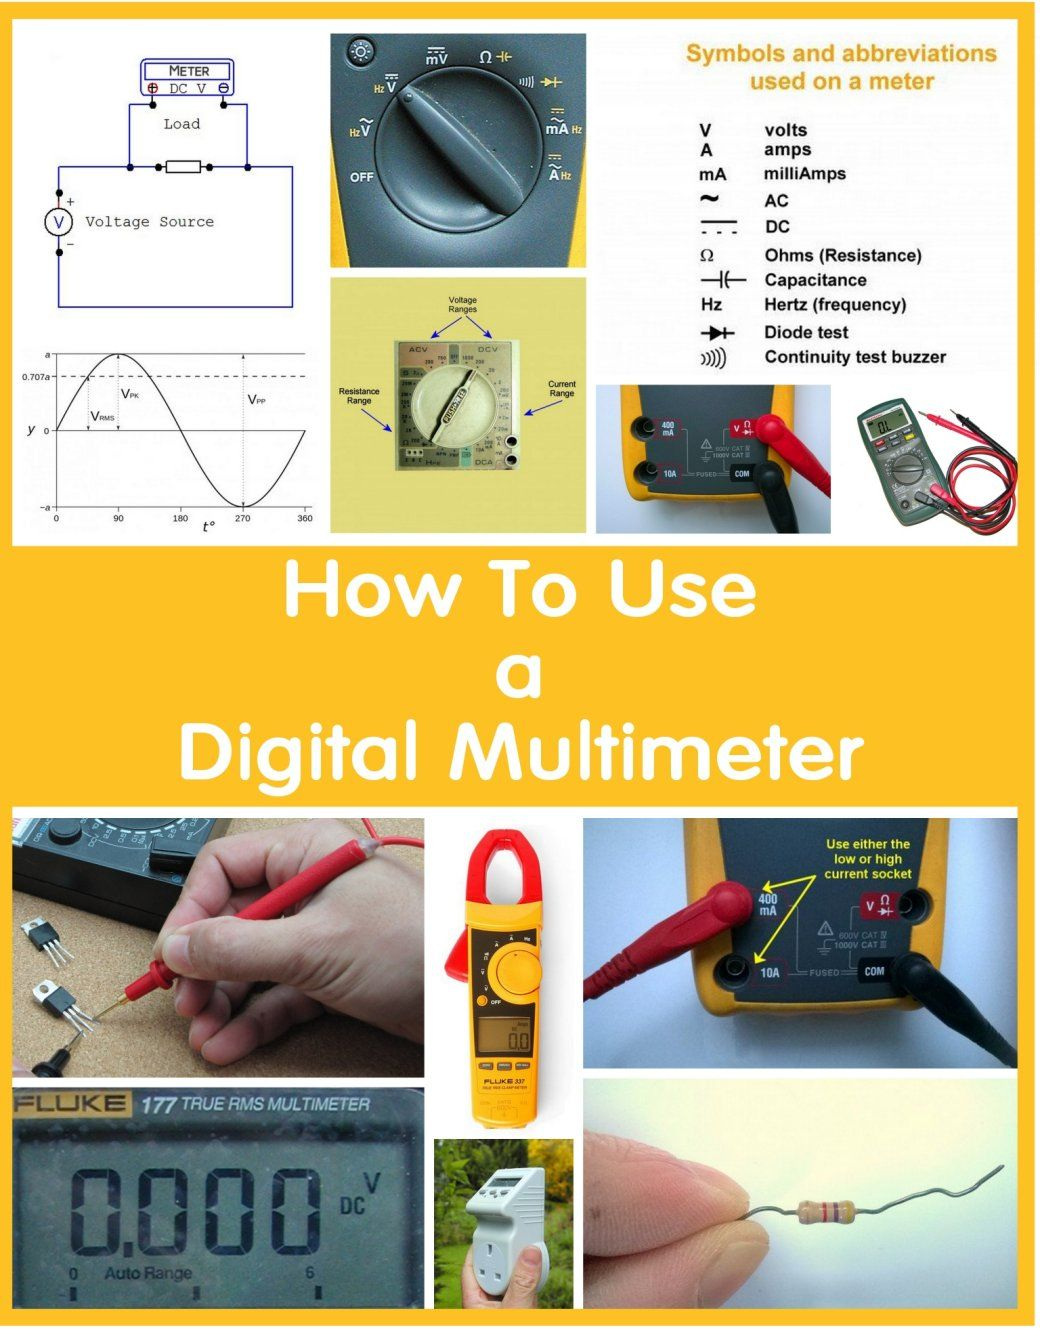 How to Use a Multimeter to Measure Voltage, Current and